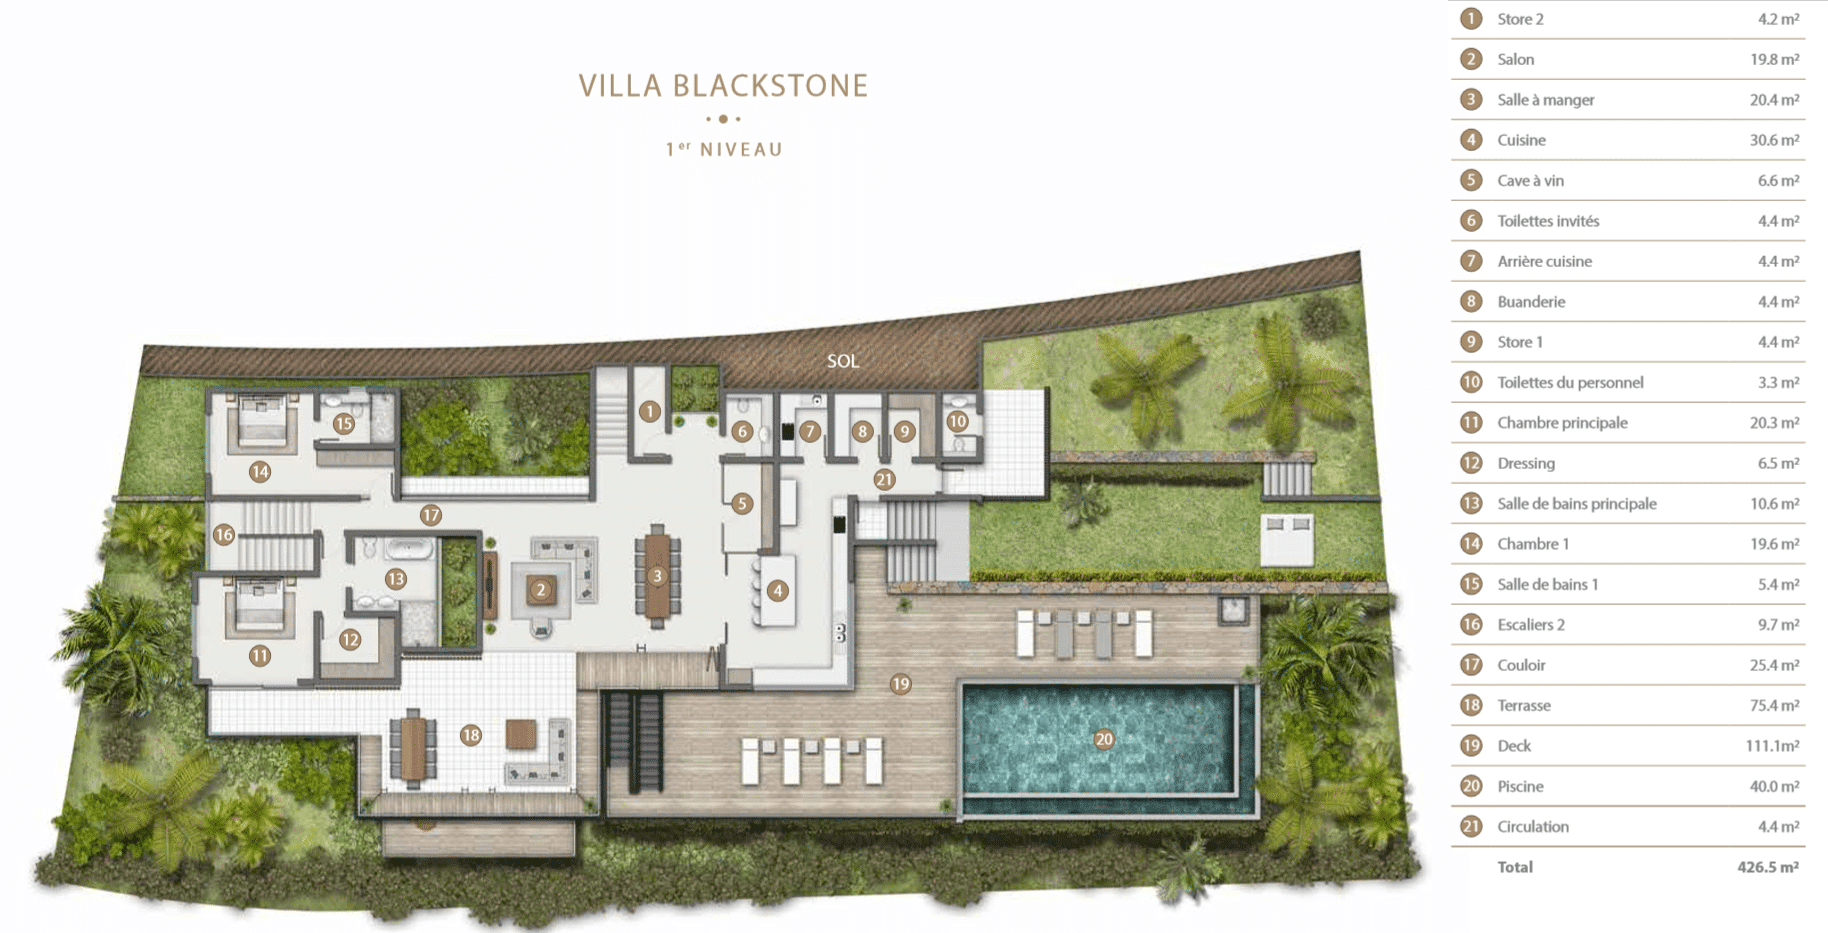 Villa Blackstone Legend Hill Ile Maurice